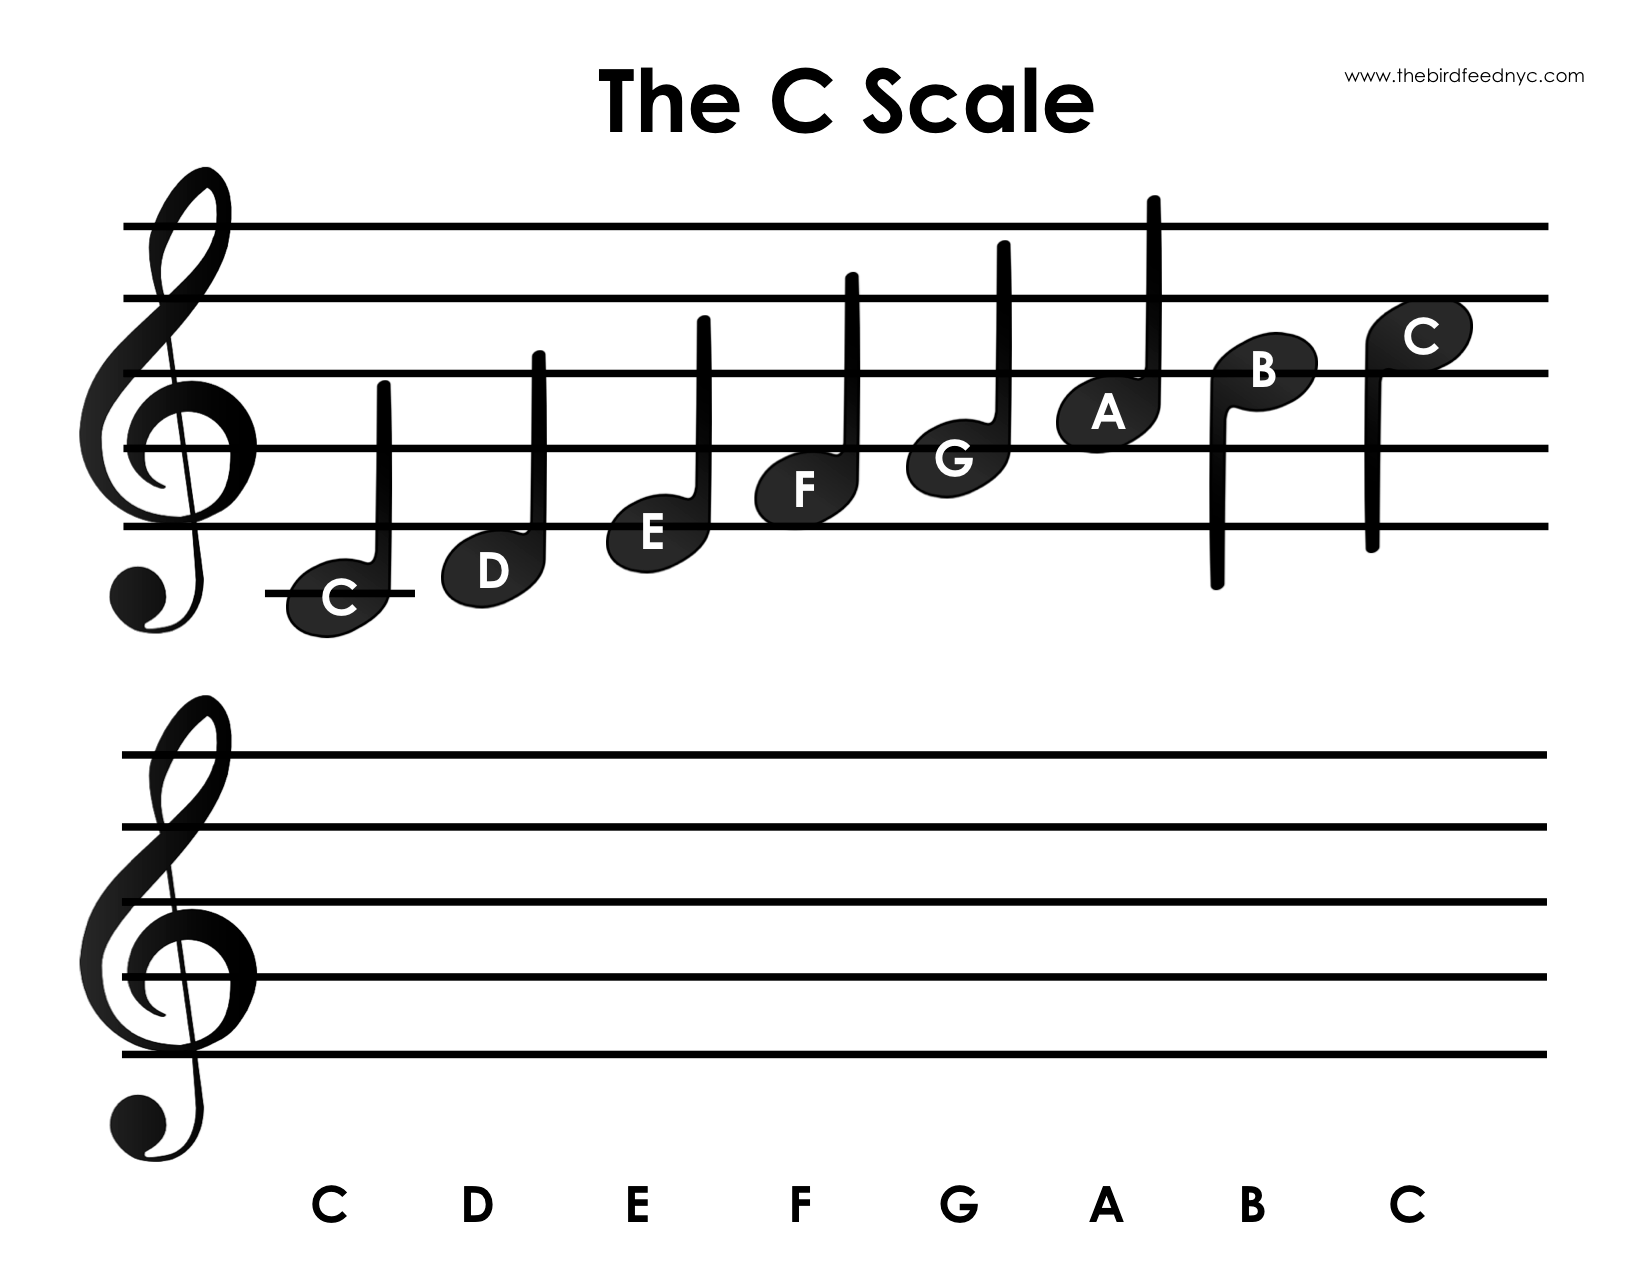 C Major Scale Activity For Kids